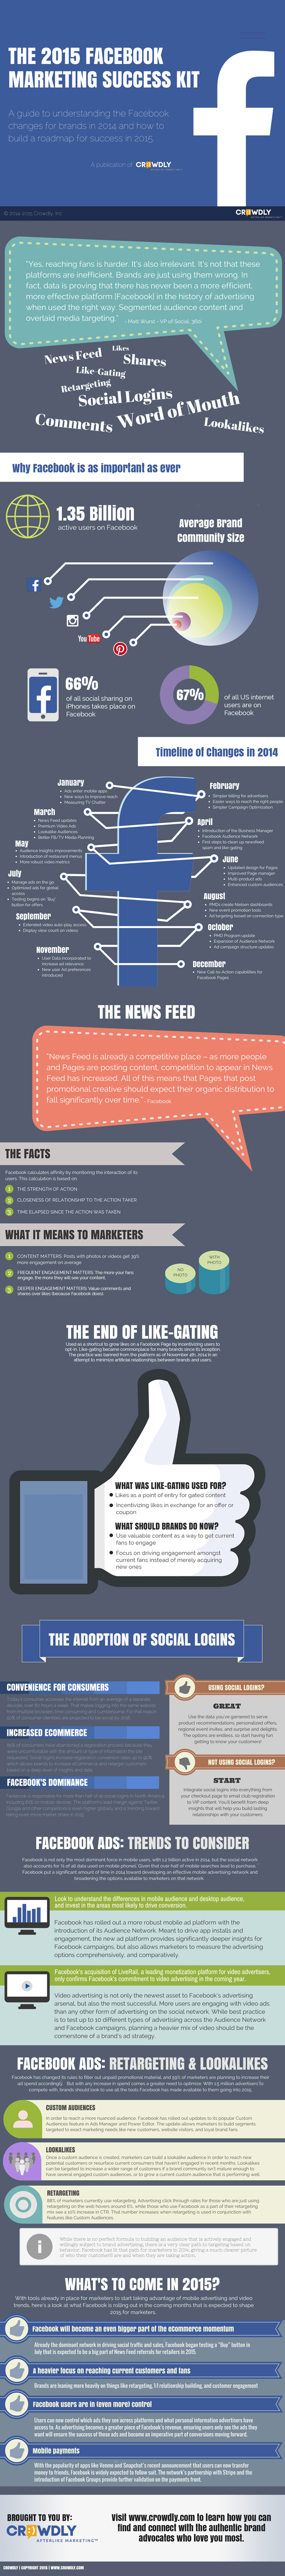 Gearing Up for Facebook Marketing in 2015!